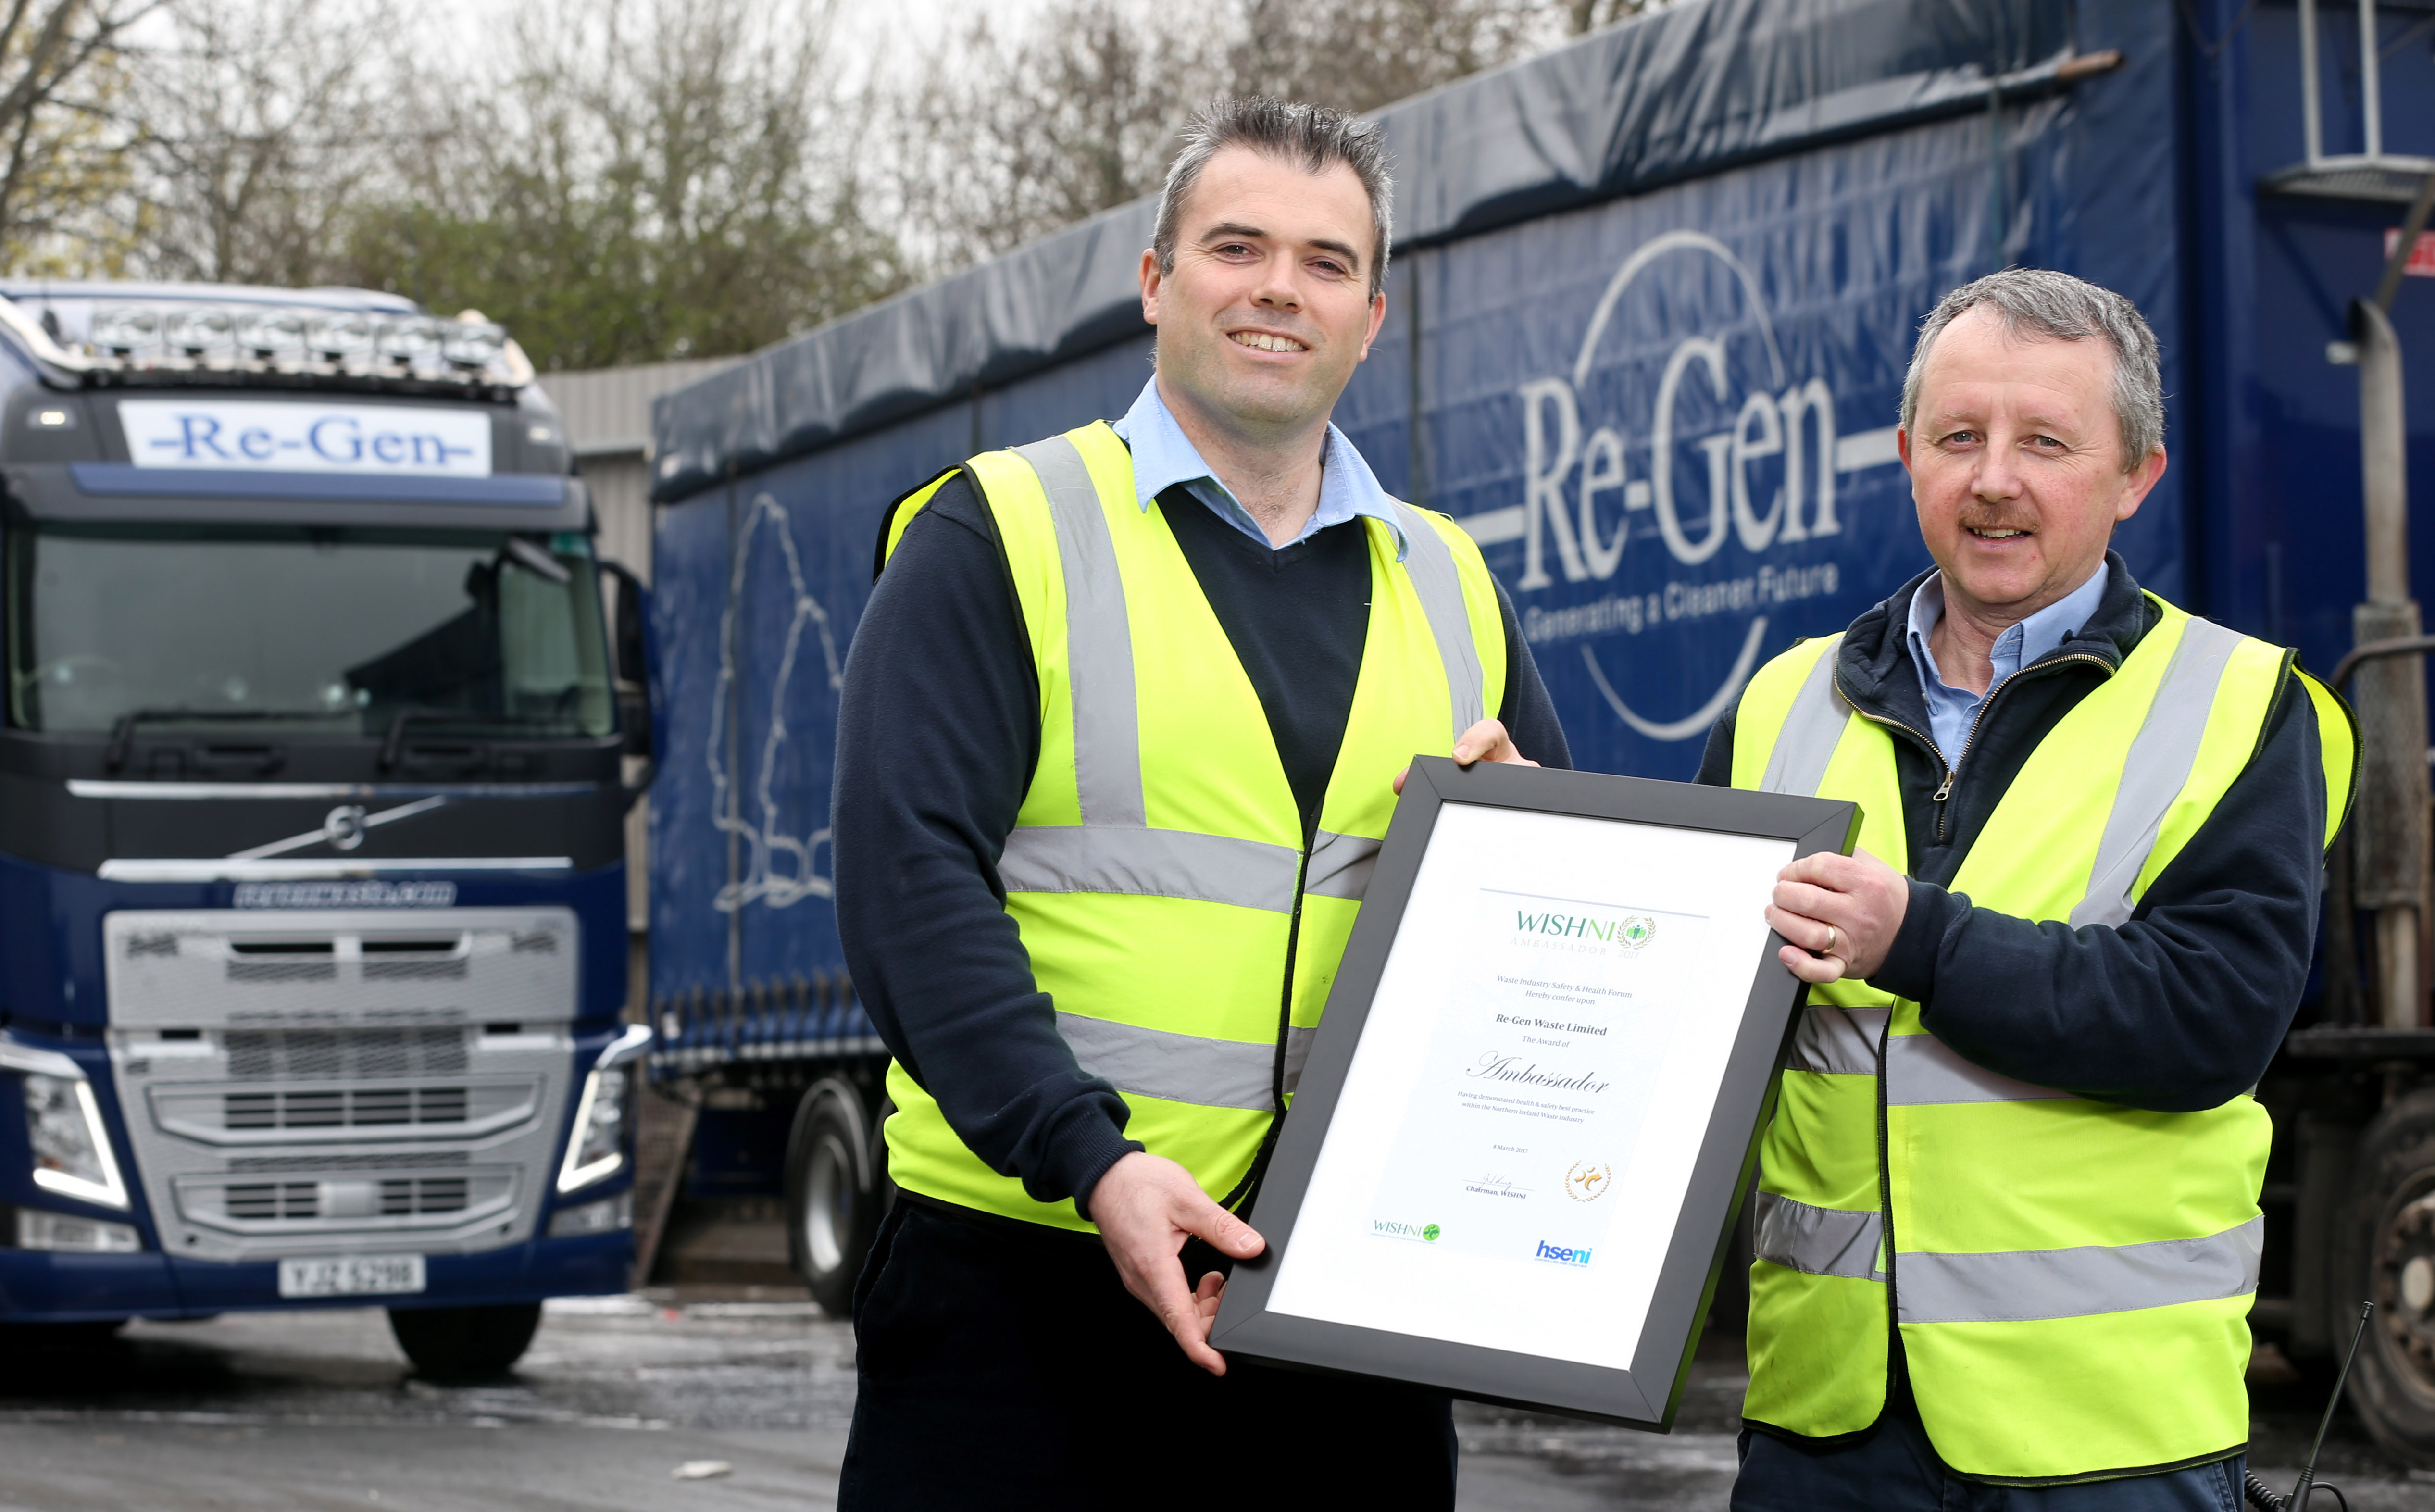 Re-Gen Waste Ltd receives major Health and Safety Industry Award